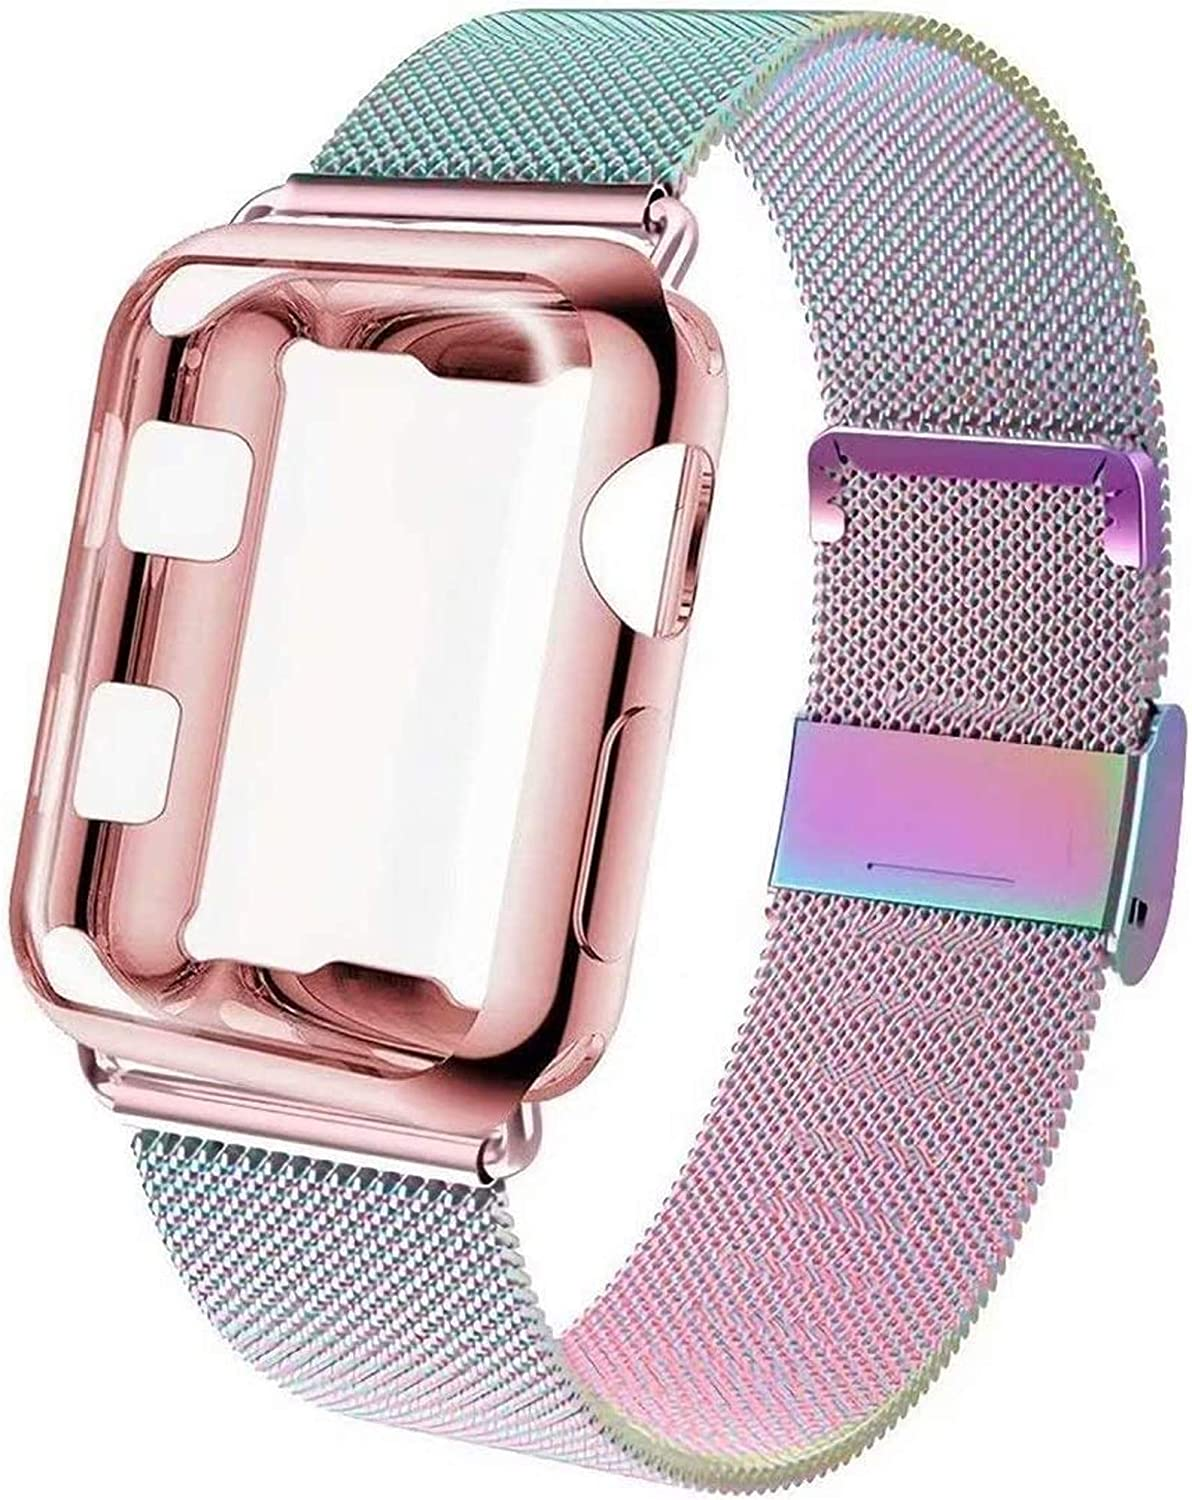 GBPOOT Compatible for Apple Watch Band 38mm 40mm 42mm 44mm with Screen Protector Case, Sports Wristband Strap Replacement Band with Protective Case for Iwatch Series 6/SE/5/4/3/2/1,40mm,Colorful